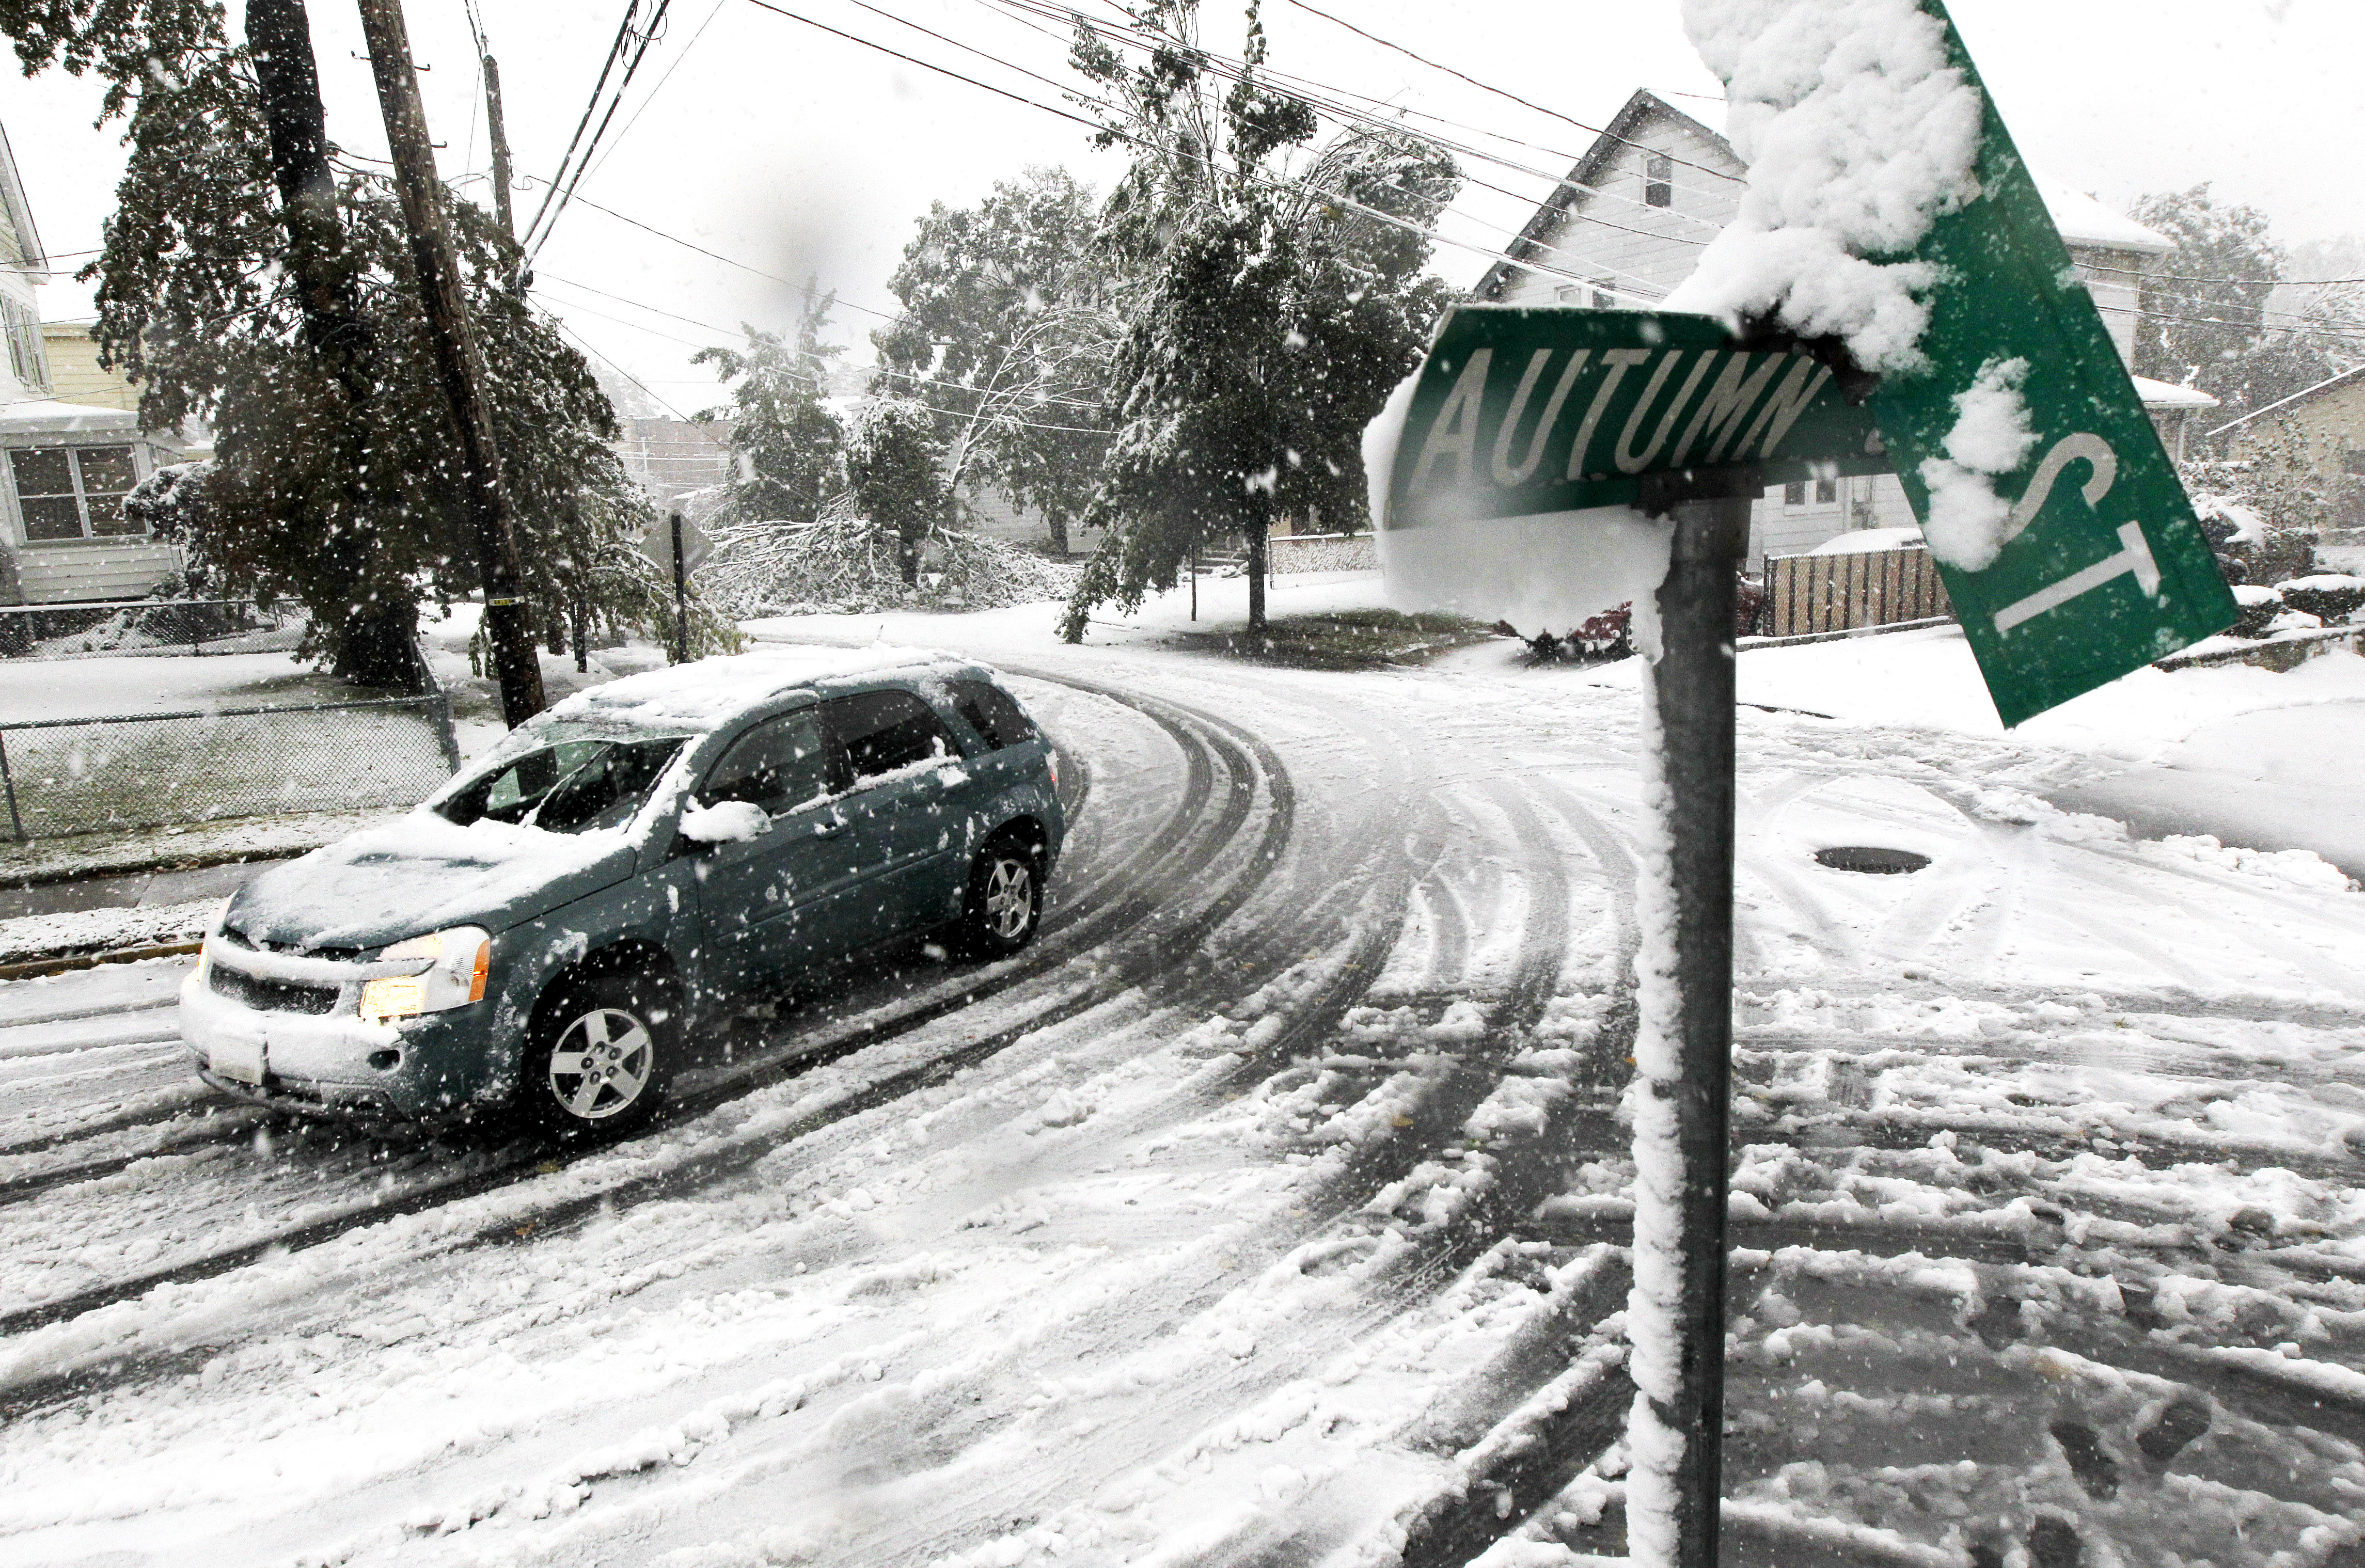 A vehicle makes its way at the snow-covered intersection of Autumn and Grove Streets in Lodi, N.J., following a rare October snowstorm that hit the region, Saturday, Oct. 29, 2011.